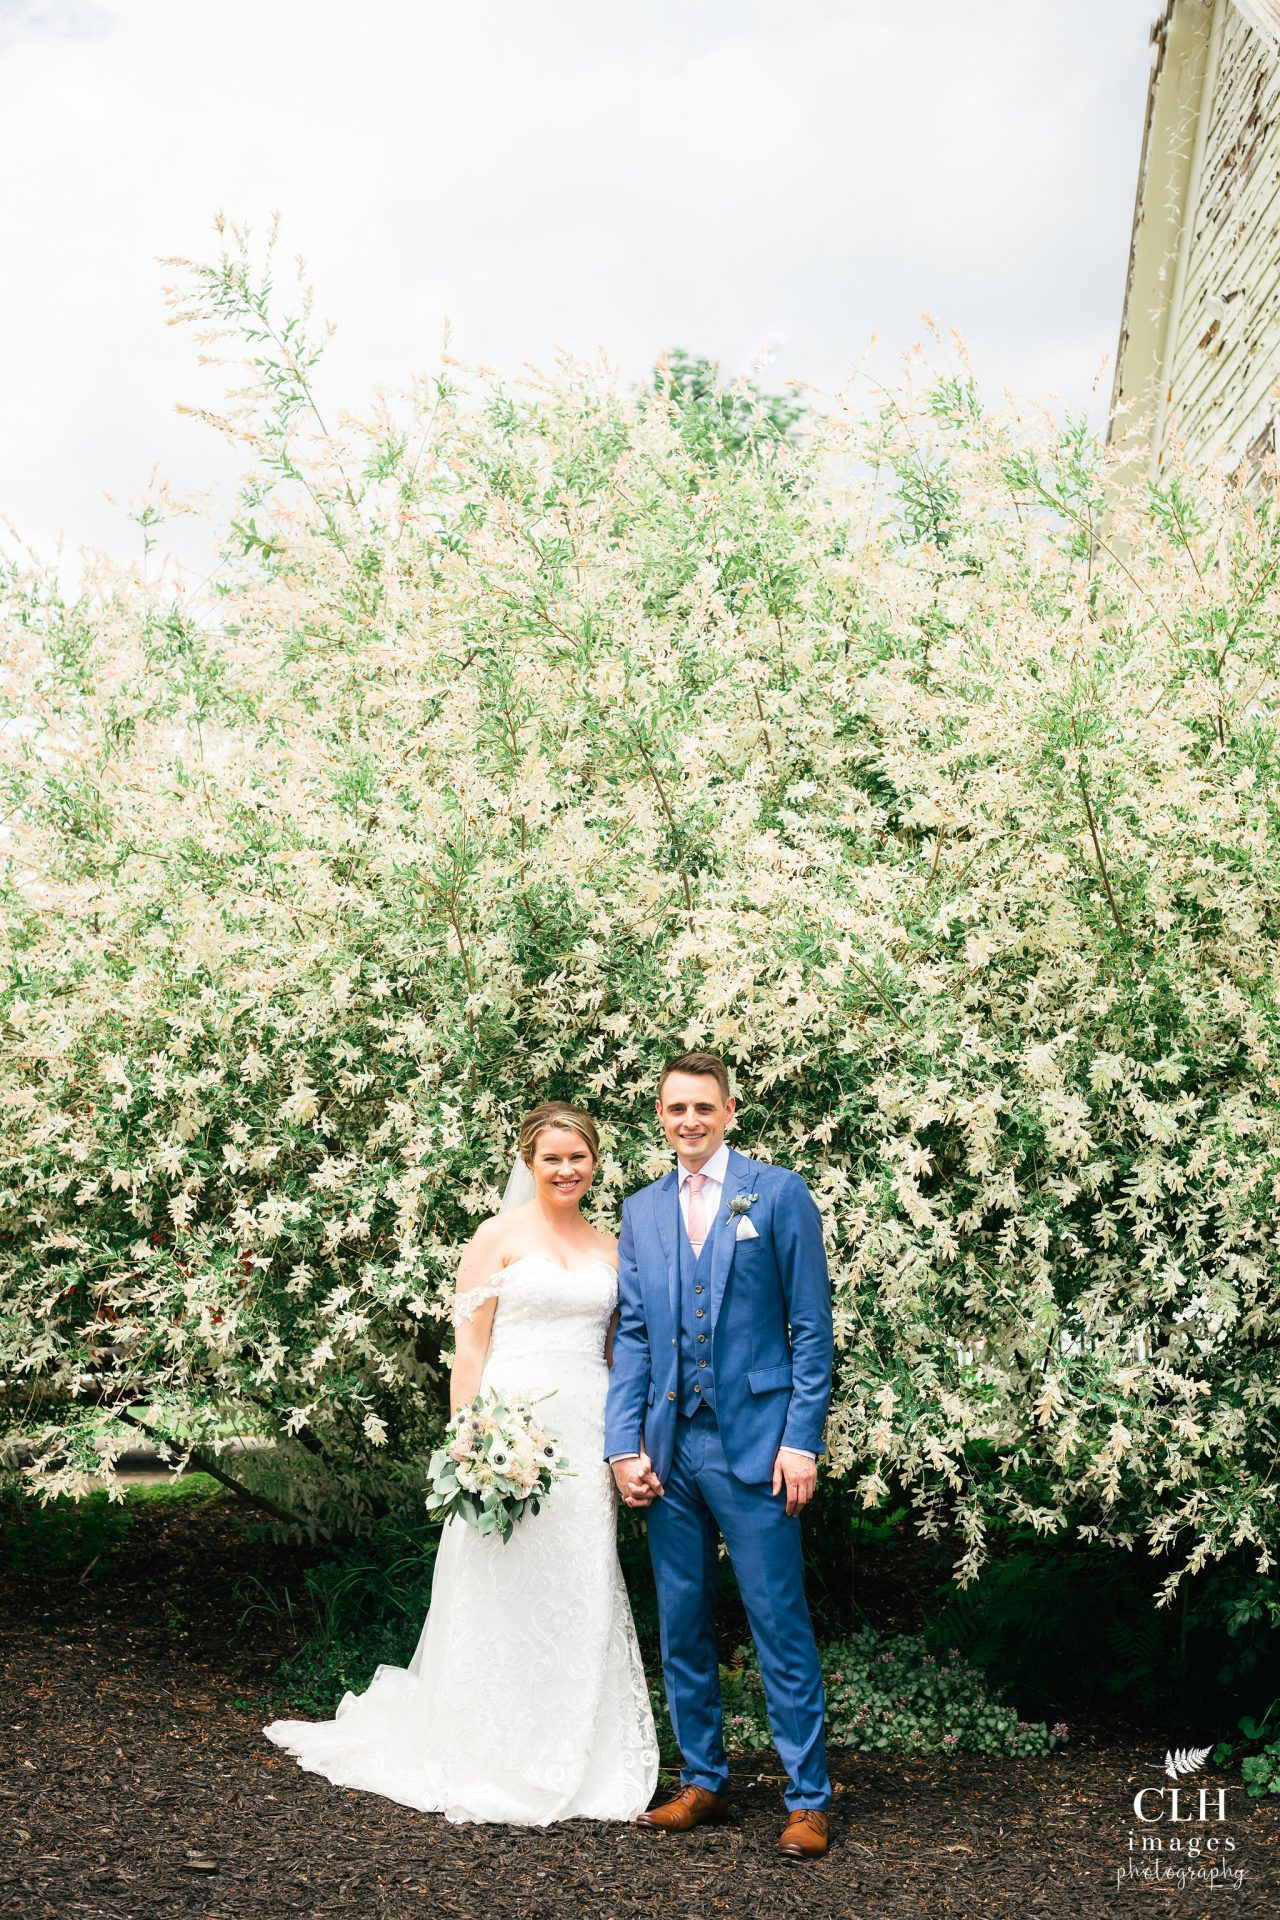 Eileen in the Tara Lauren Leona bridal gown from Lovely Bride NYC